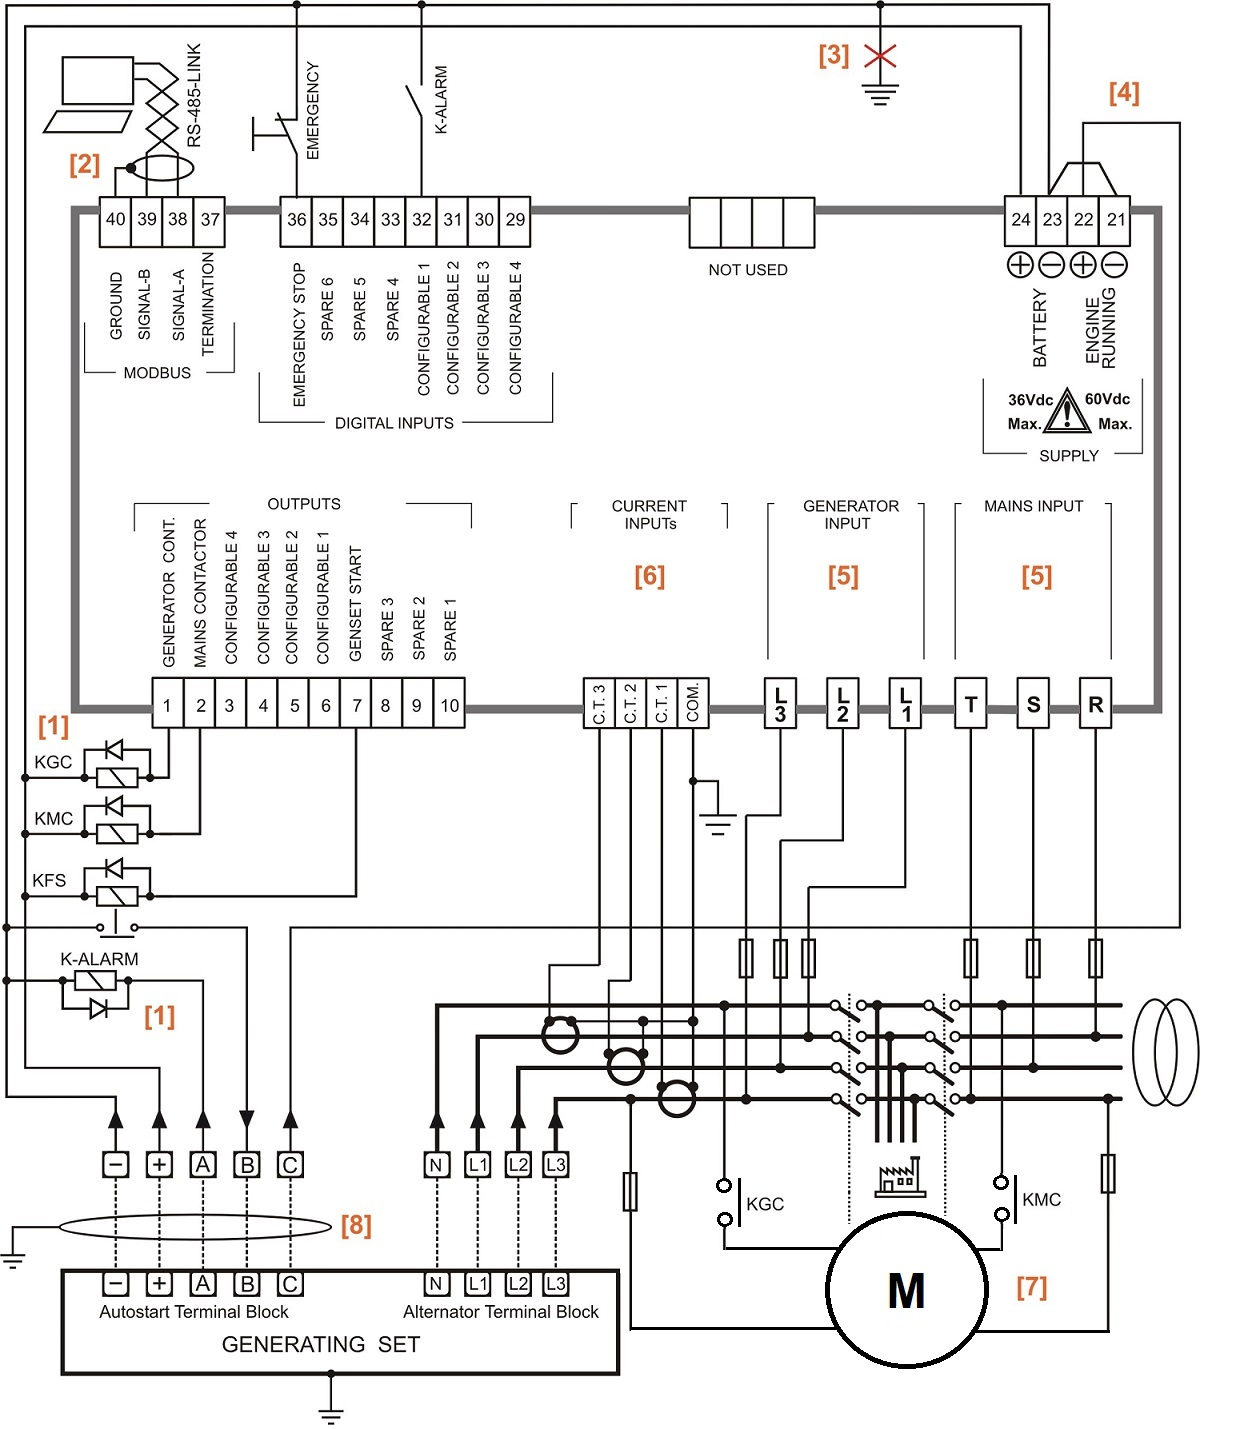 File Name: Gen Transfer Switch Wiring Diagram